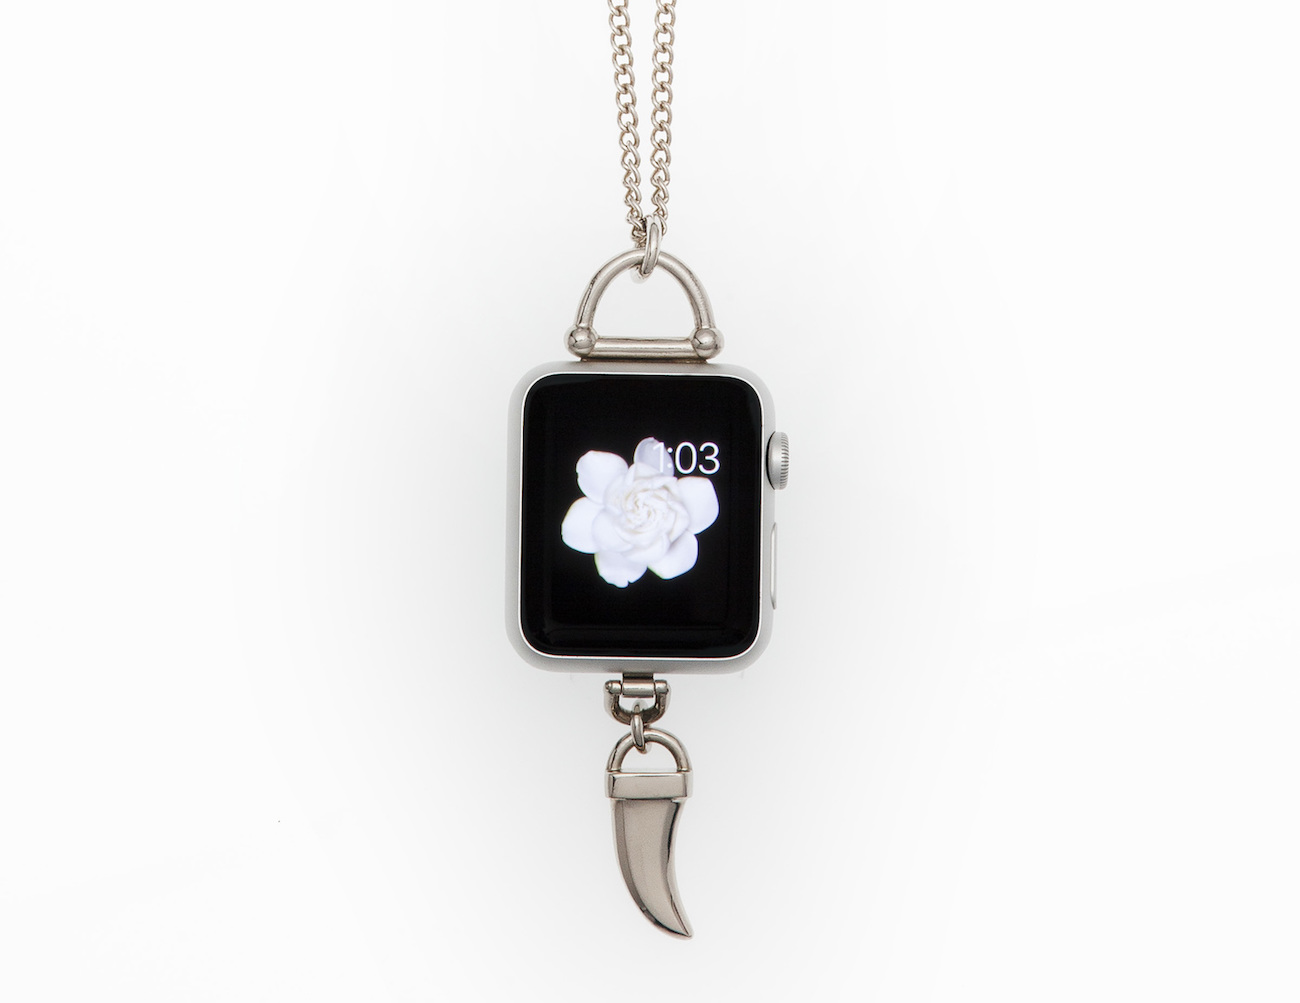 Horn charm pendant necklace for apple watch by bucardo gadget flow horn charm pendant necklace for apple watch by bucardo aloadofball Choice Image